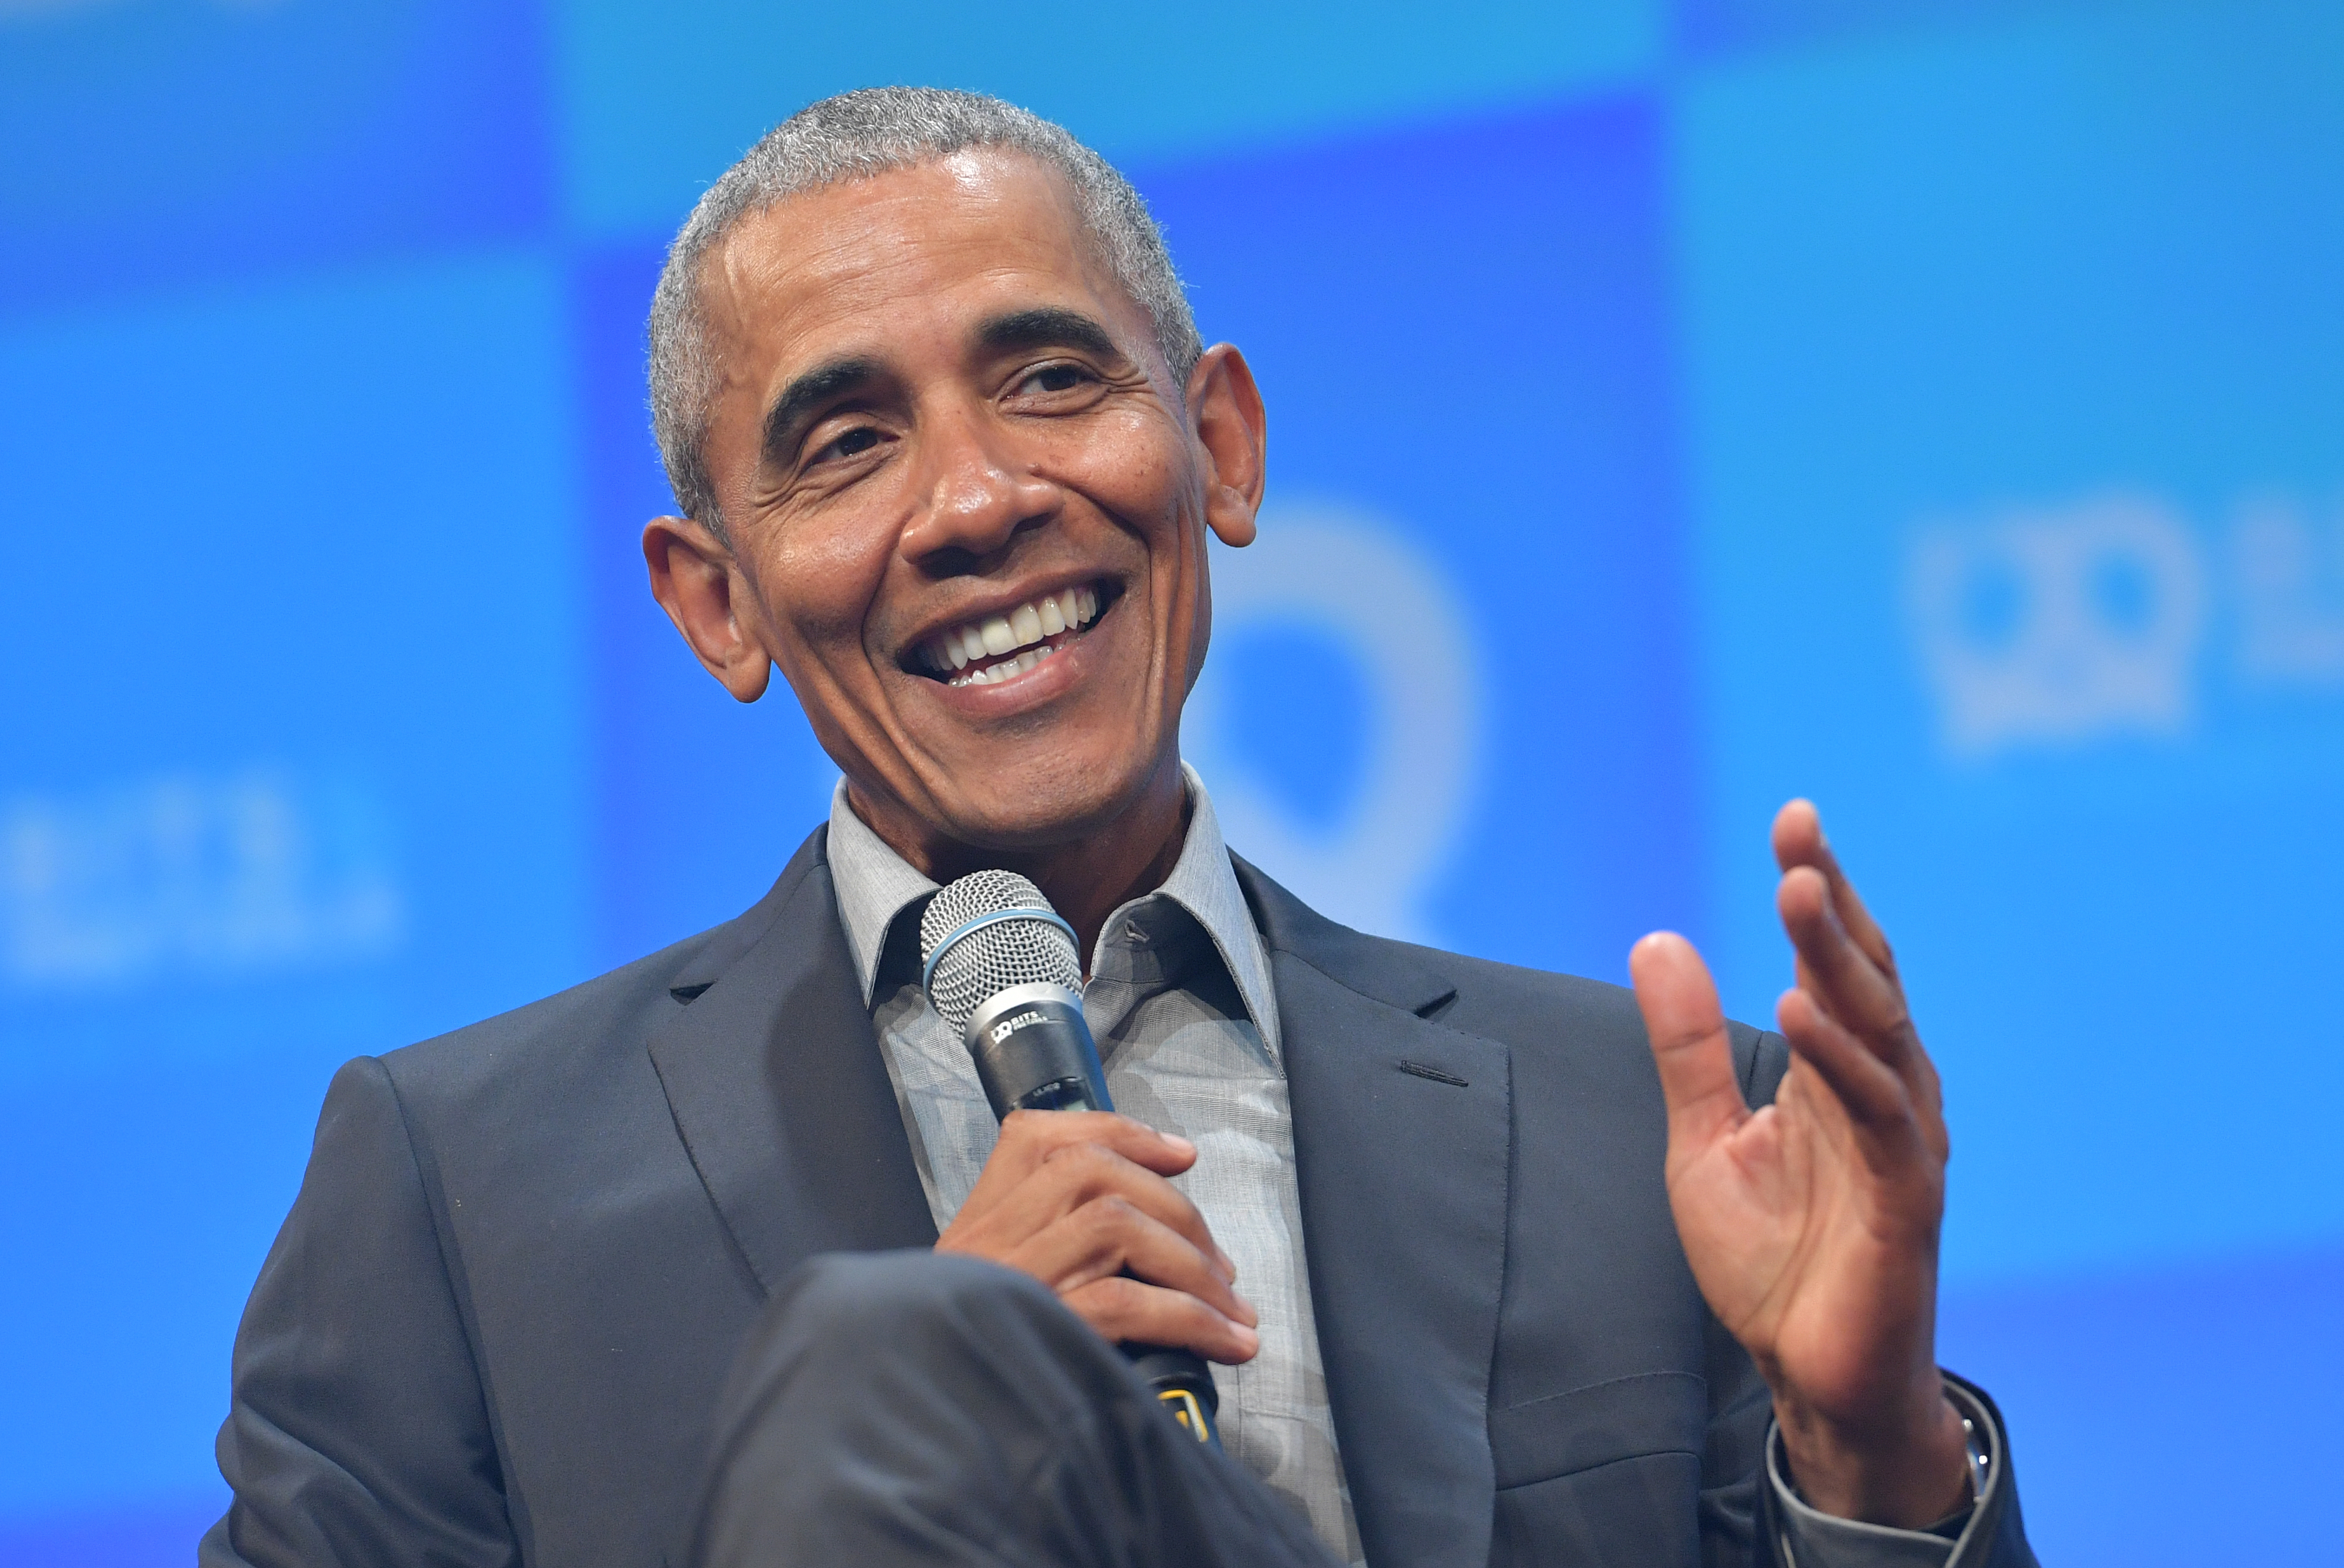 Barack Obama's Childhood Home in Hawaii Is Now Listed for $2.2 Million